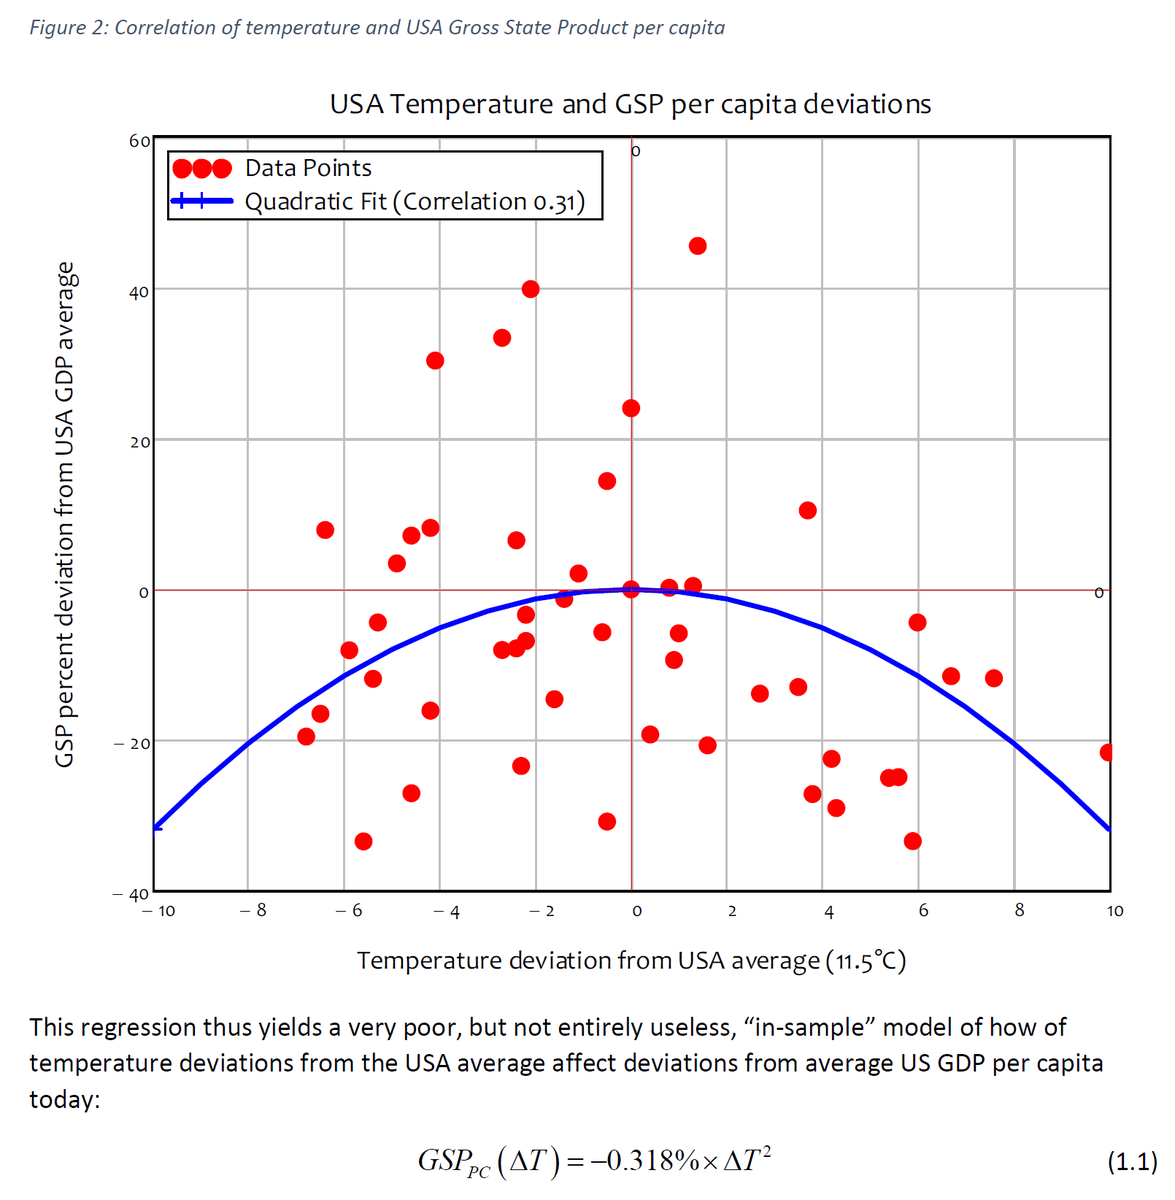 15/44 I.e. the crux of their research here: a solid regression using a negative quadratic relation between temperature and GDP per capita for the US, because why not, it looks kind of right.